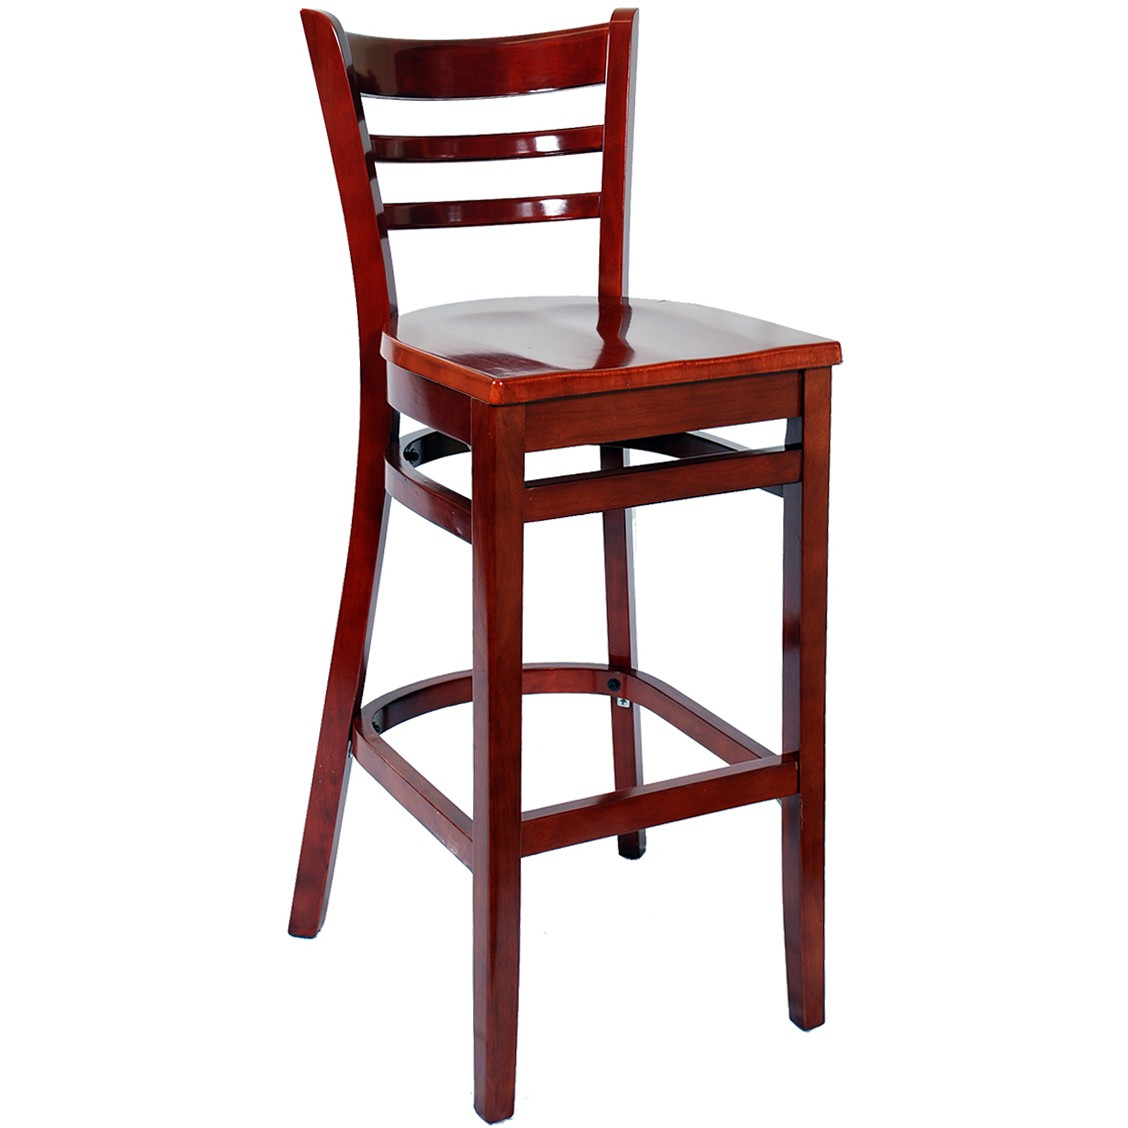 ladder back bar stool mahogany finish with a wood seat - Wooden A Frame Ladder